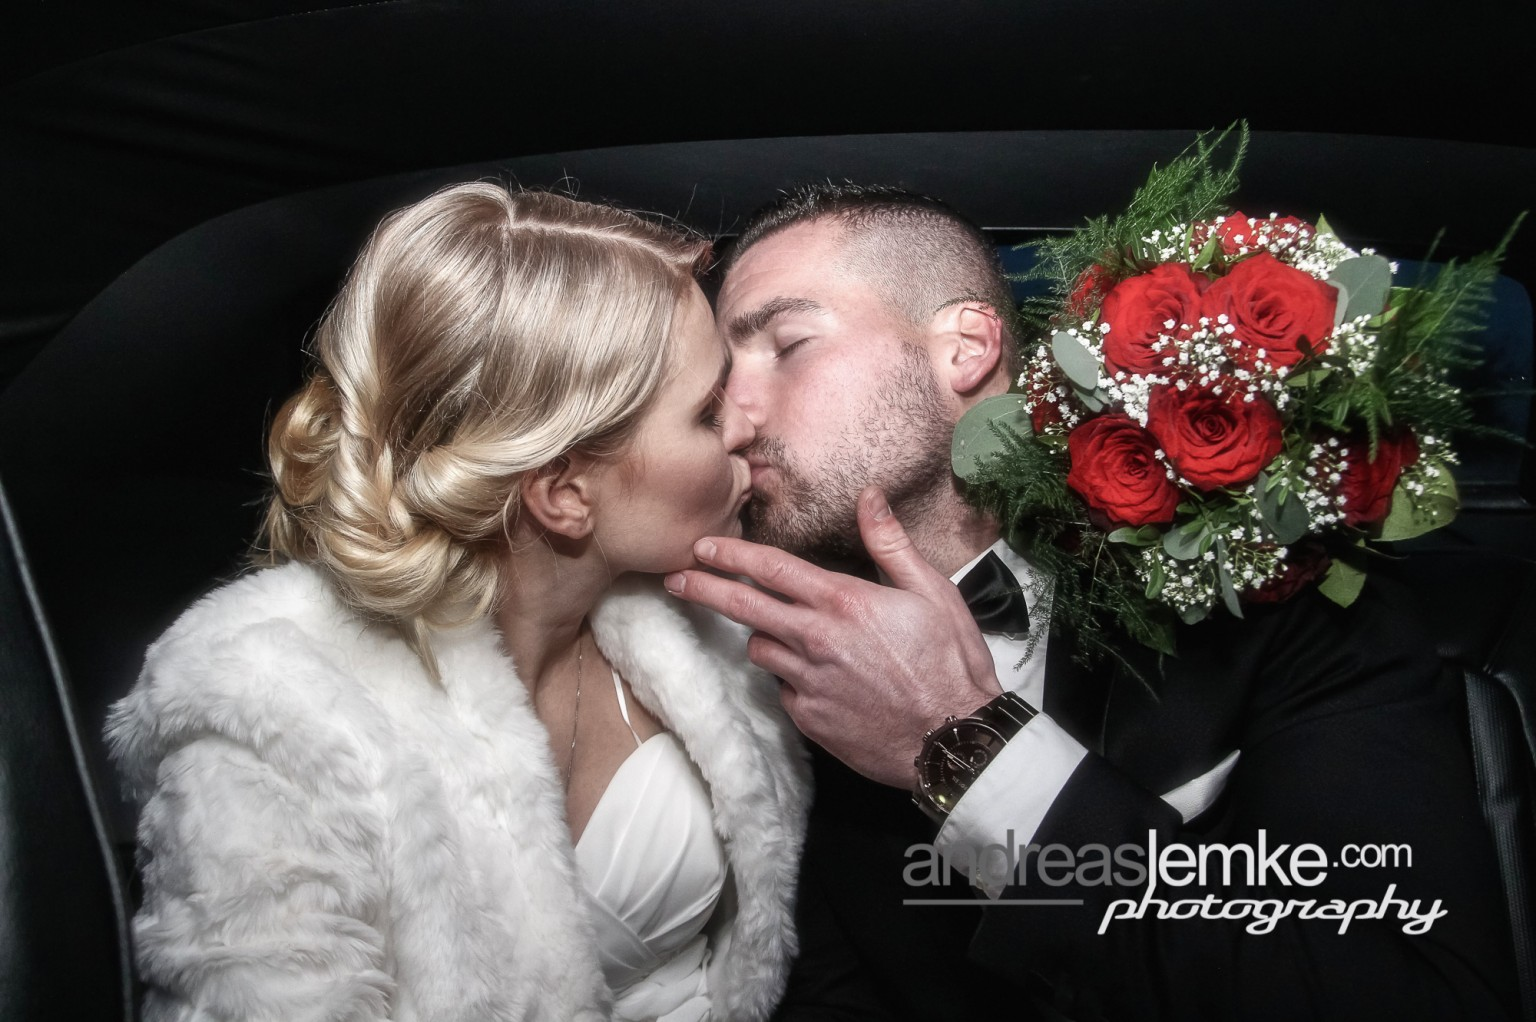 Another Wedding Kiss